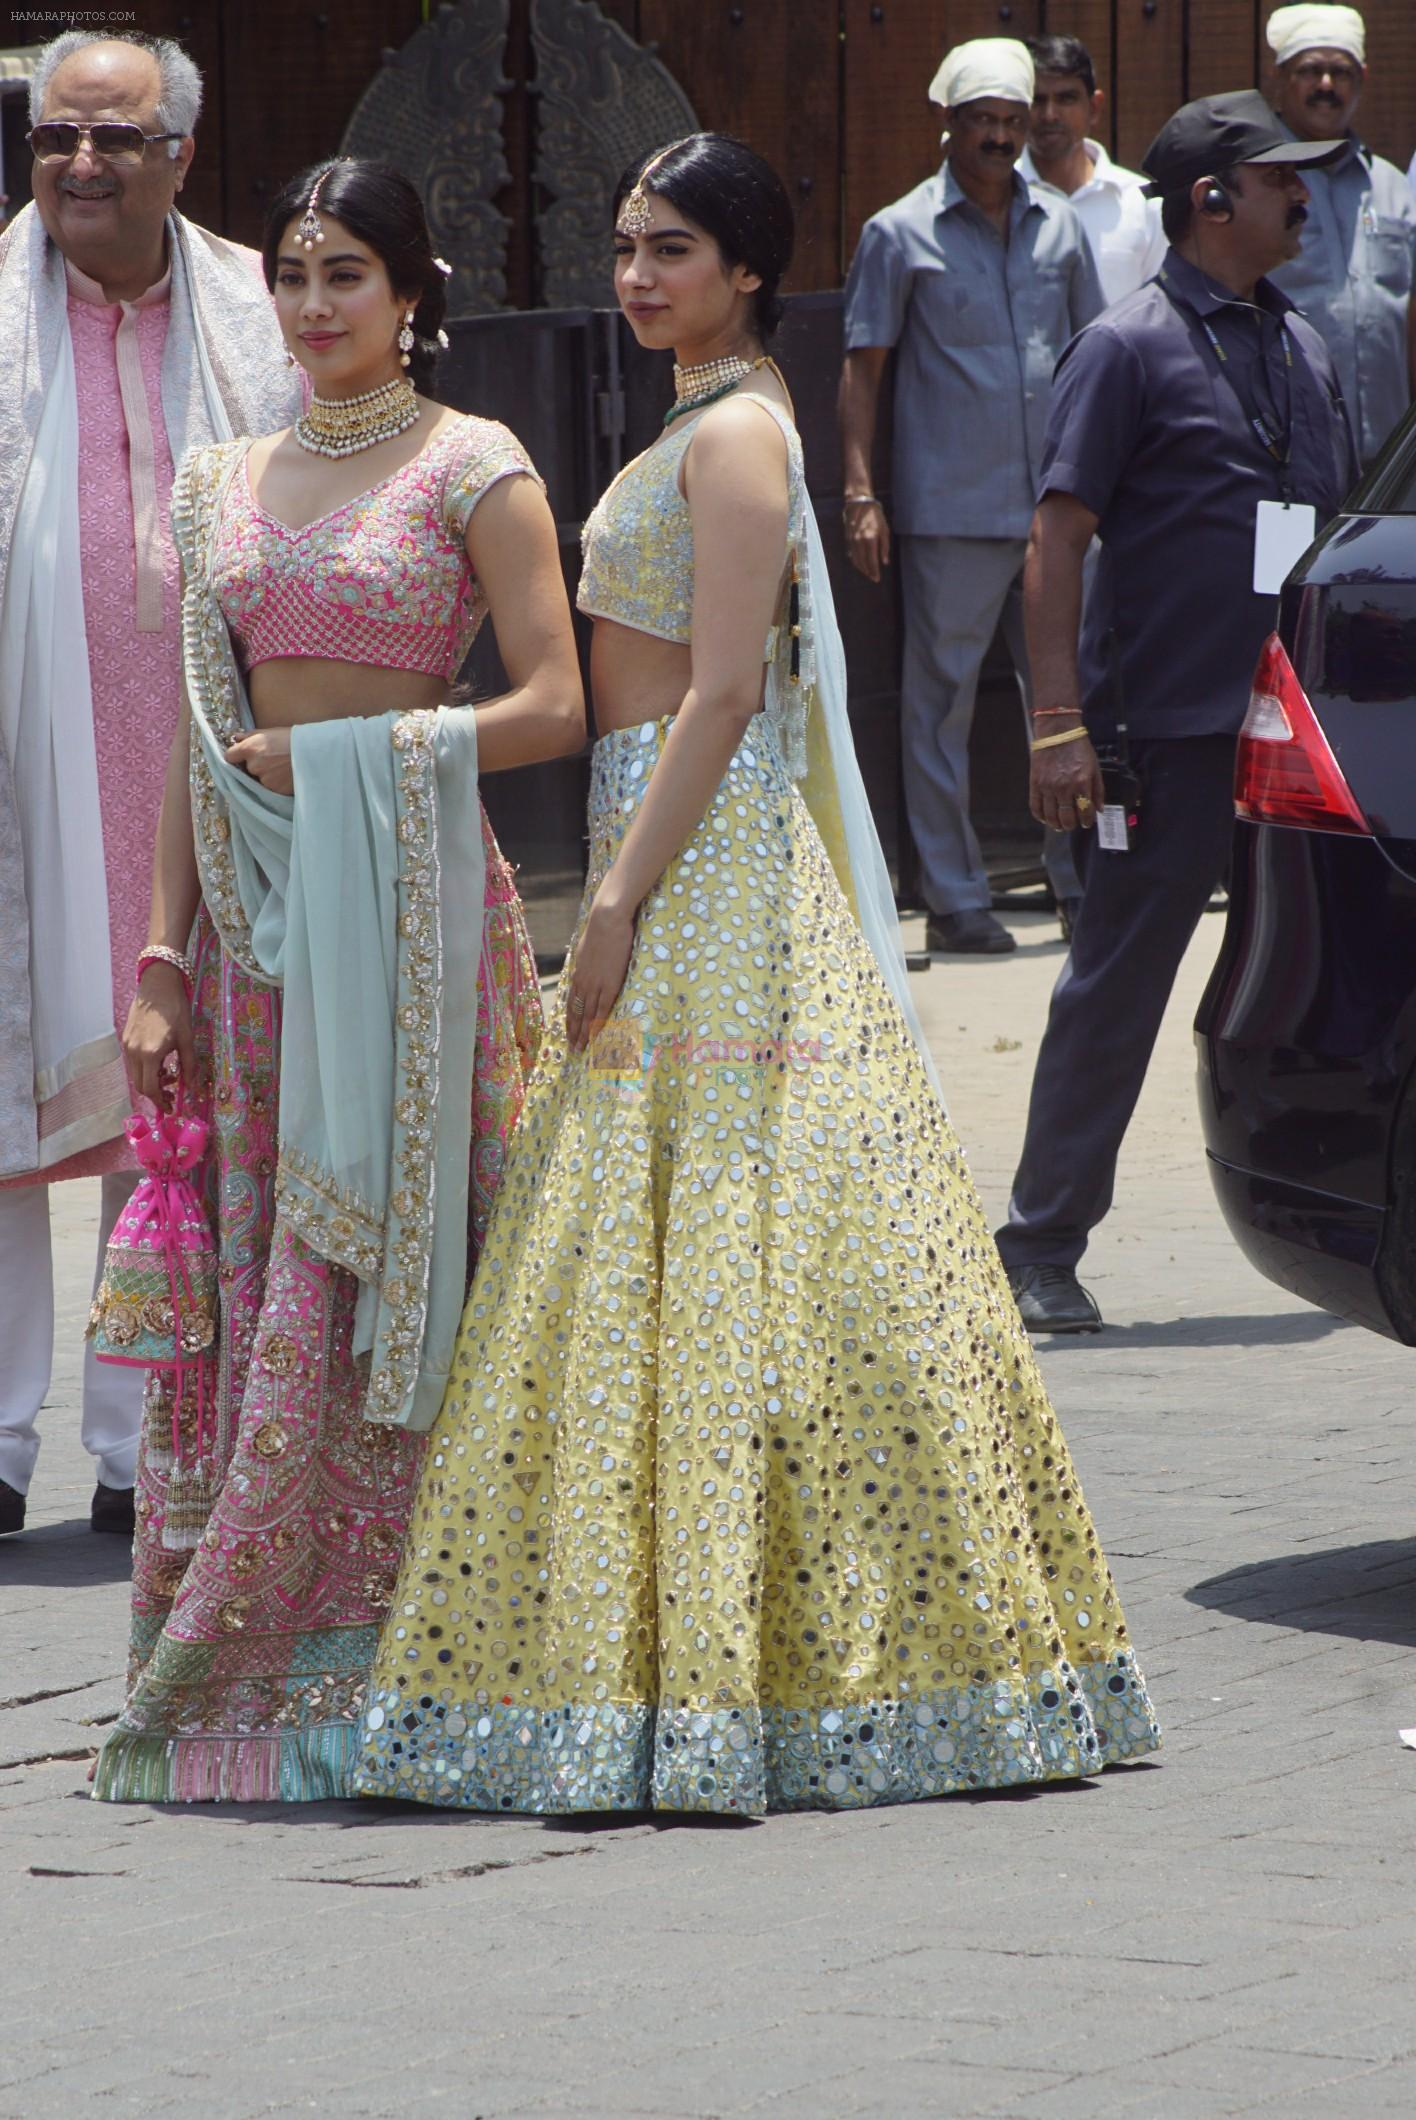 Janhvi Kapoor, Khushi Kapoor, Boney Kapoor at Sonam Kapoor Anand Ahuja's wedding in rockdale bandra on 8th May 2018